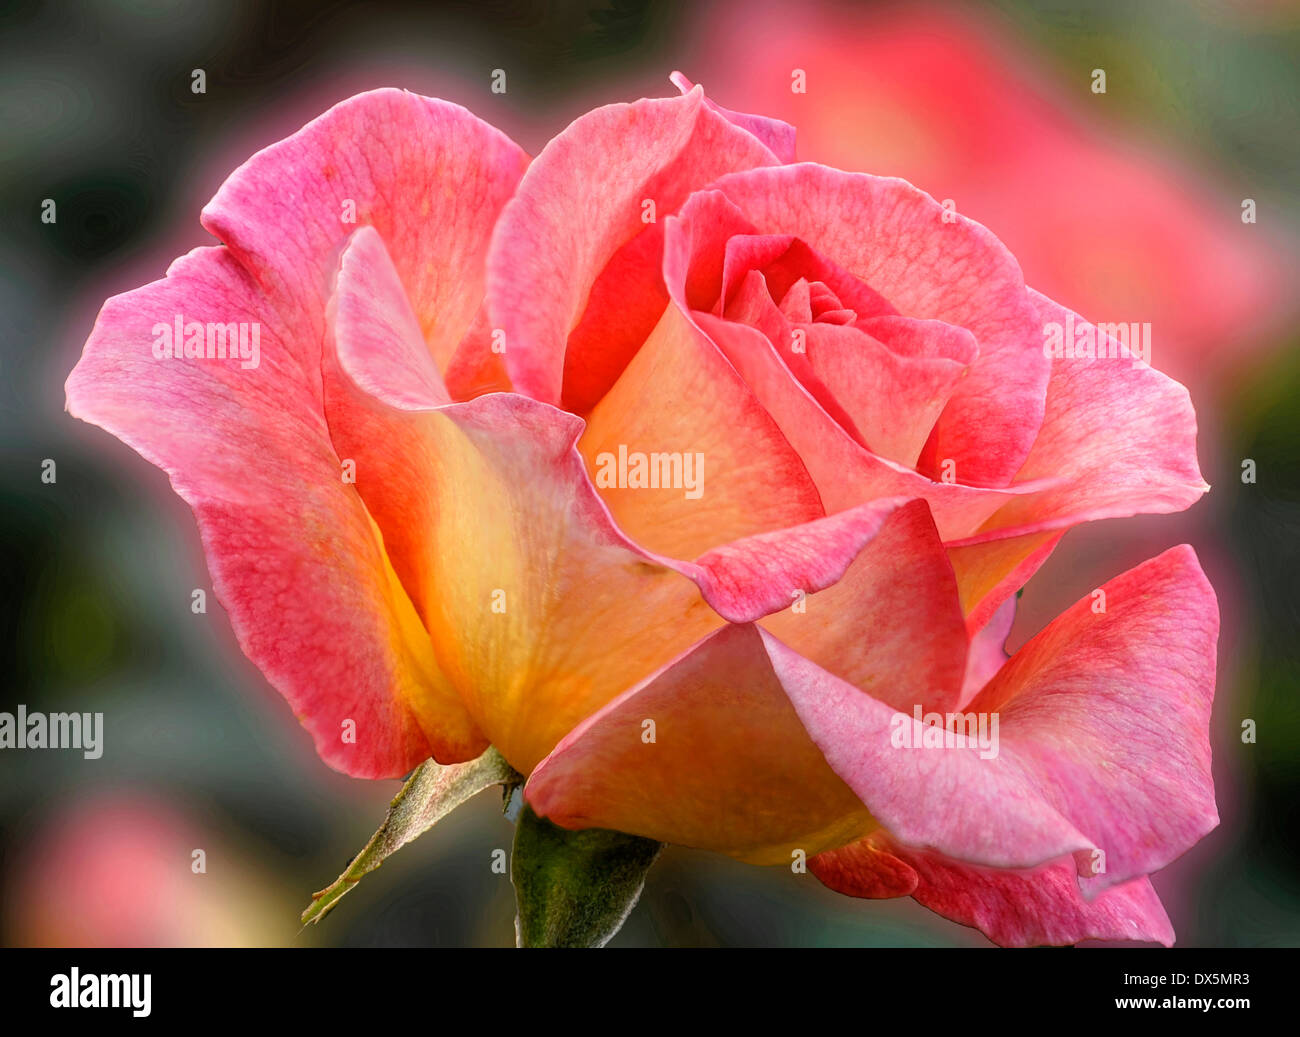 pastel-colored Rose - Stock Image